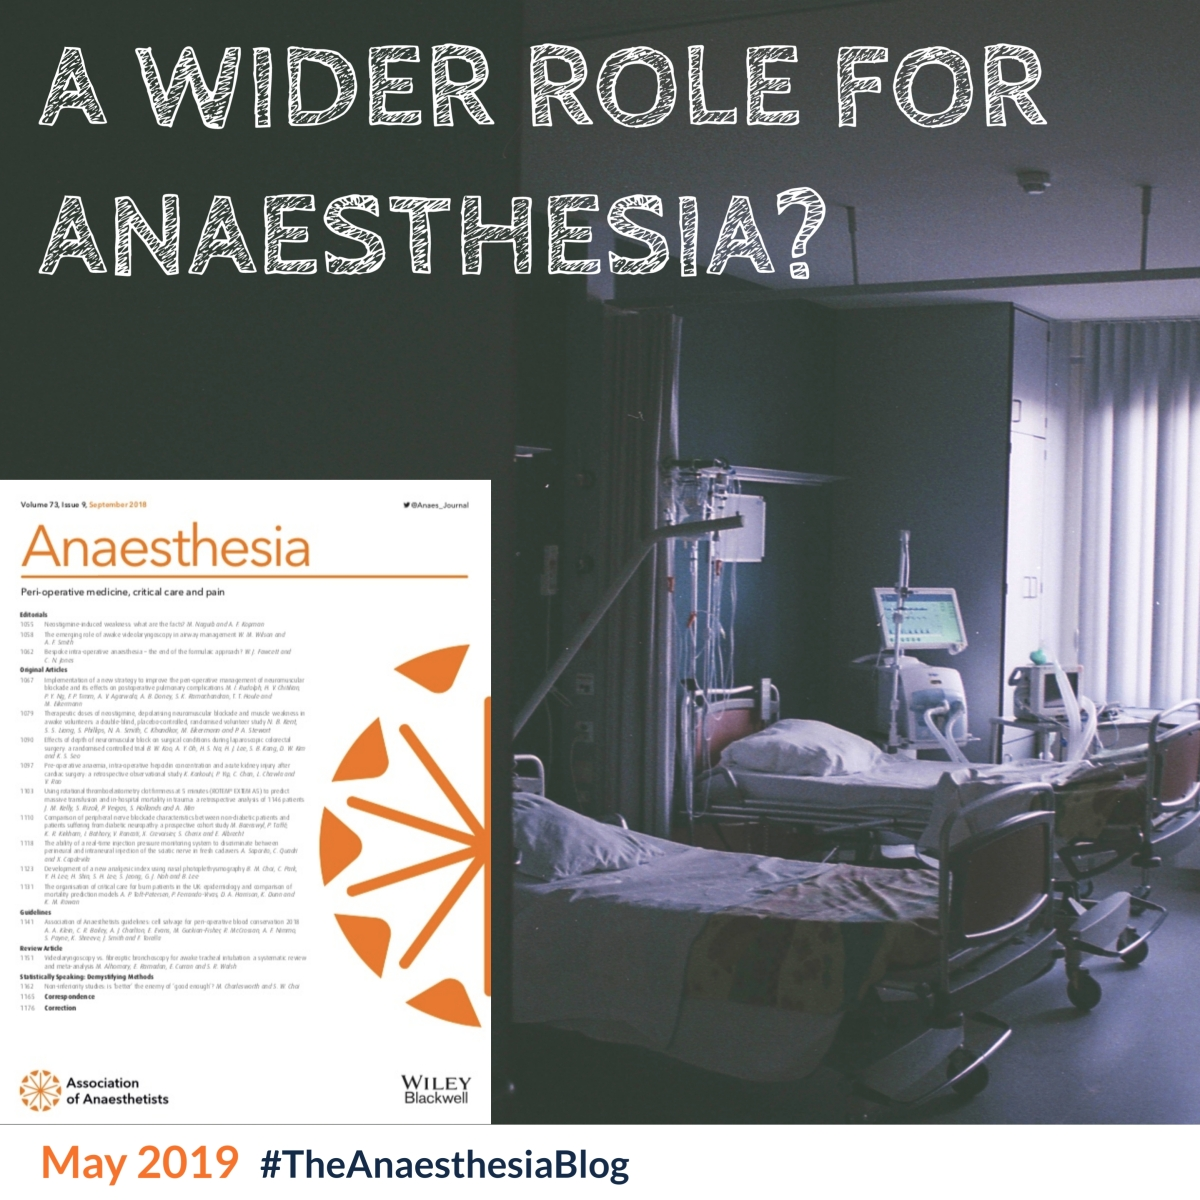 A wider role for anaesthesia?